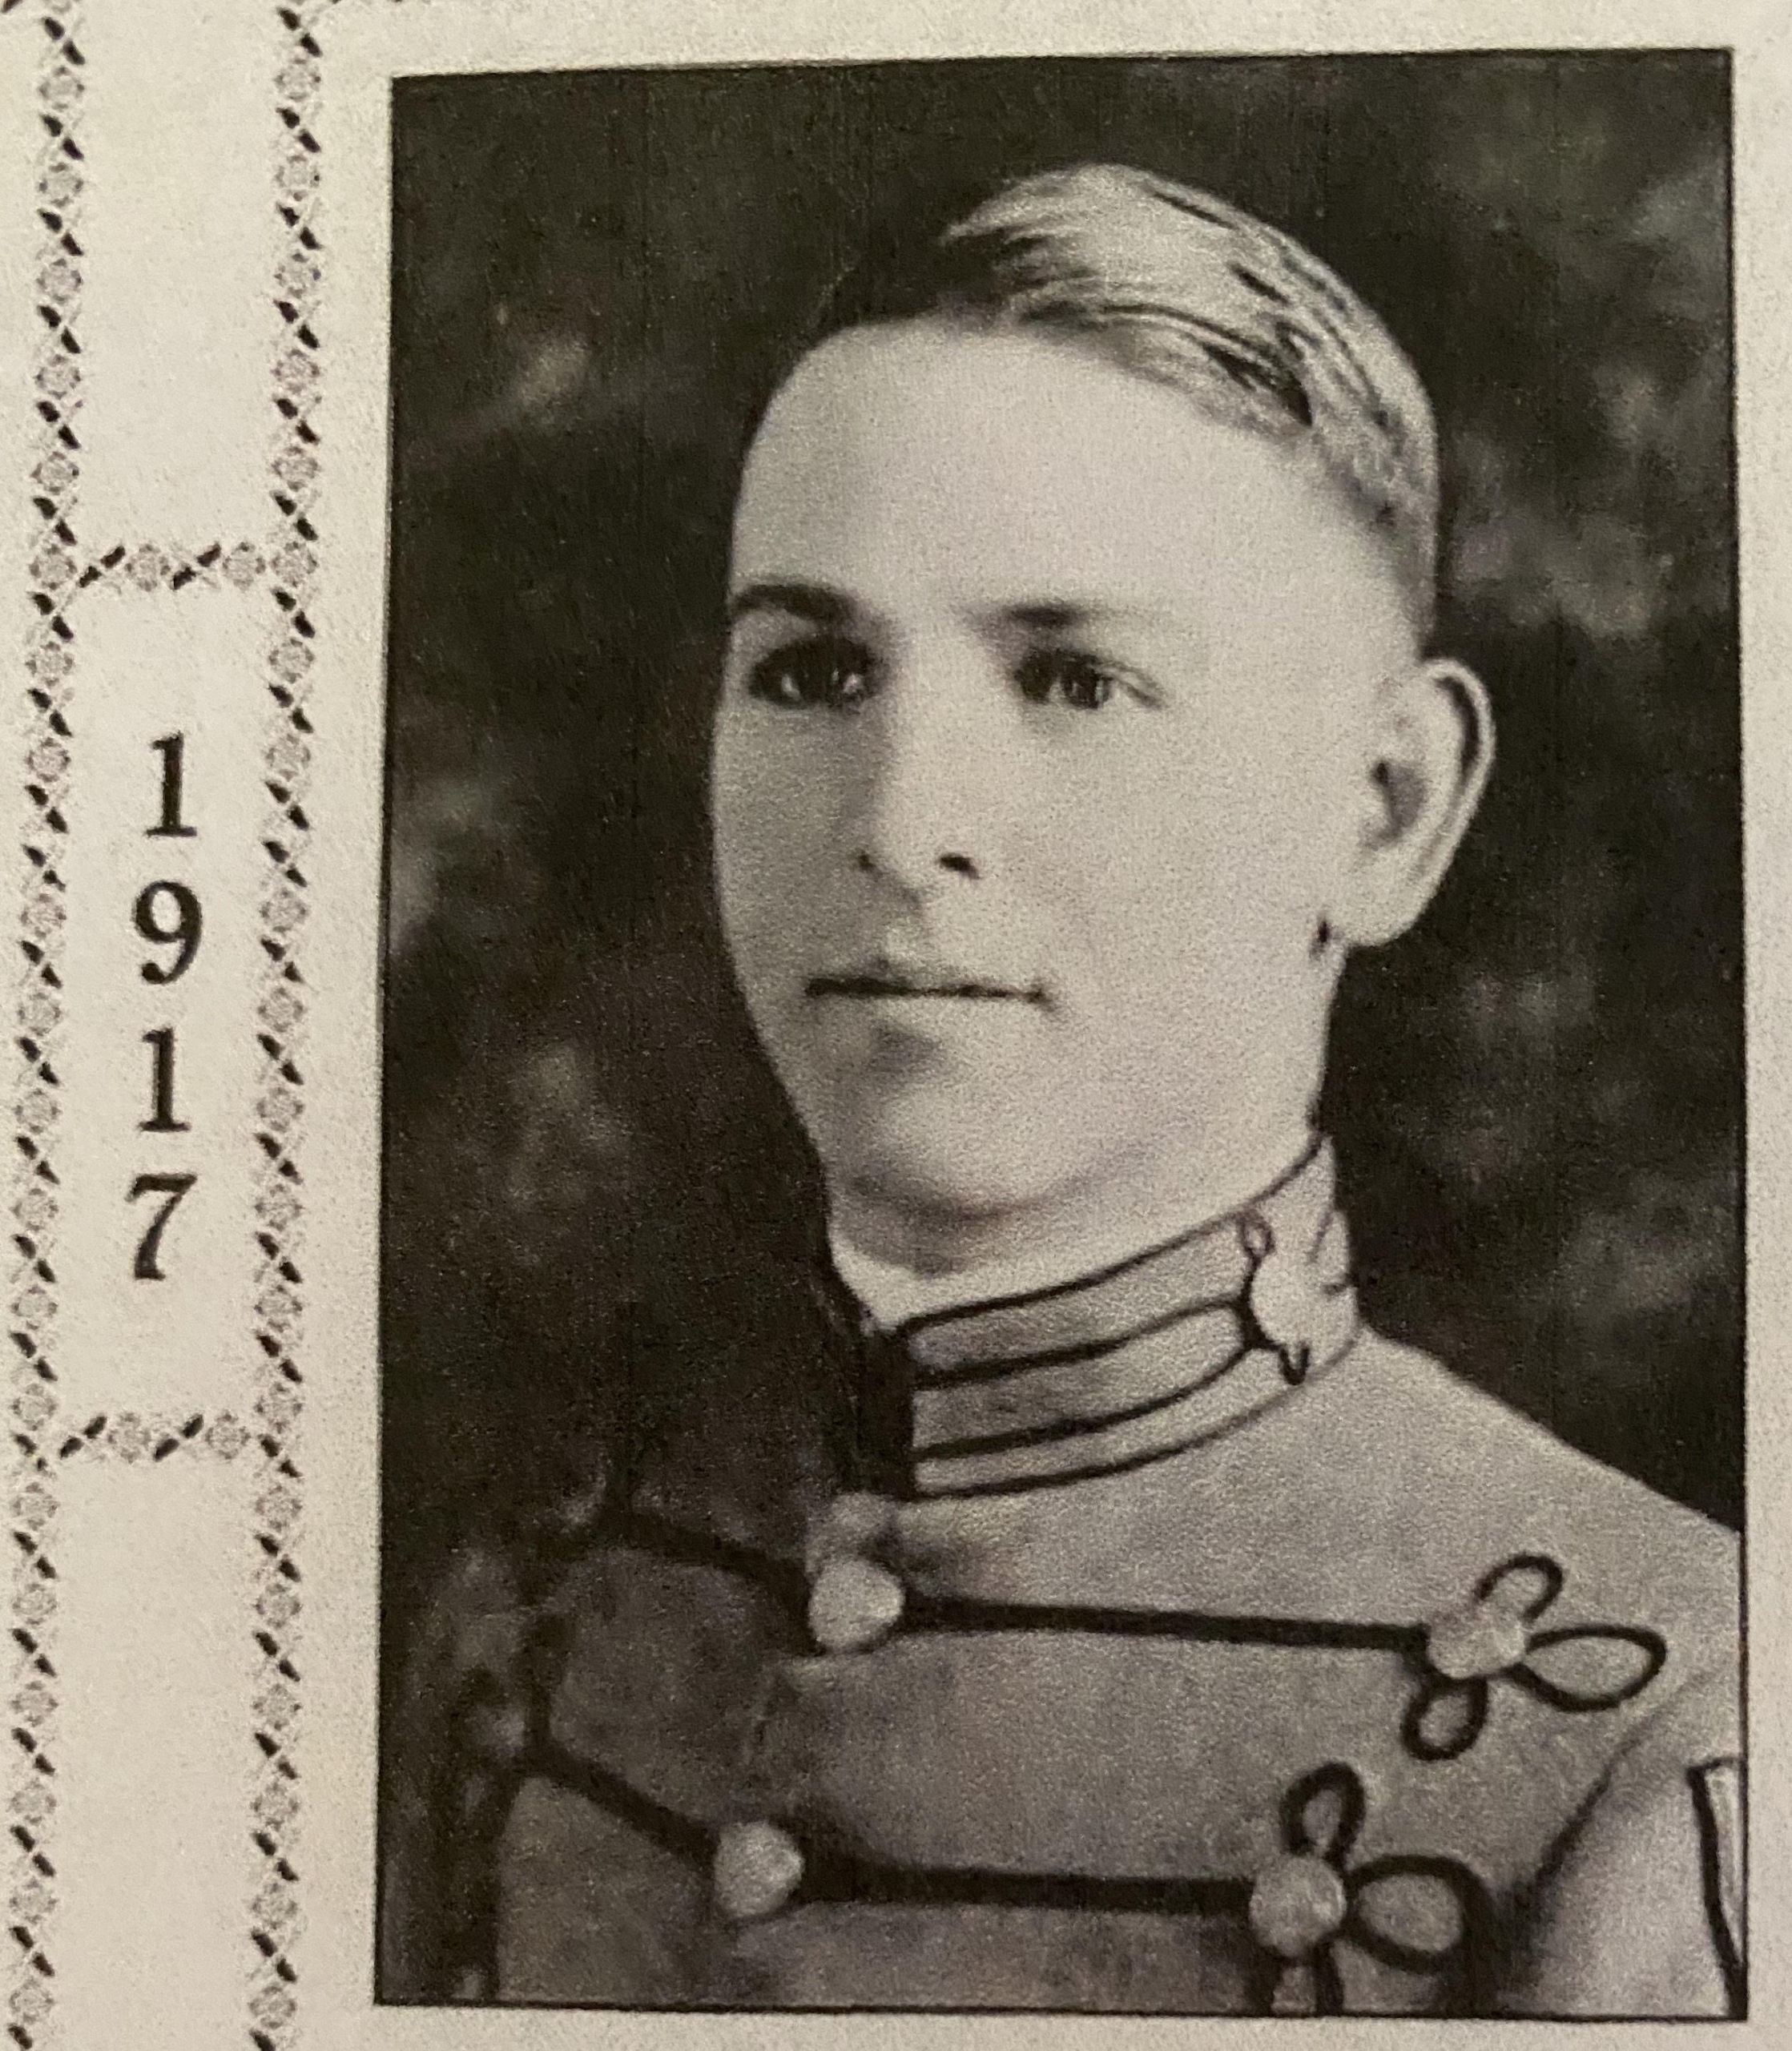 Hebron, Maryland native Samuel Freeny attended St. Johns College while playing professional baseball for several teams in the Blue Ridge League. Upon graduating in 1917, he joined the Marines. During World War II he was taken prisoner by the Japanese and was beheaded in the Philippines. (MARK ZEIGLER)